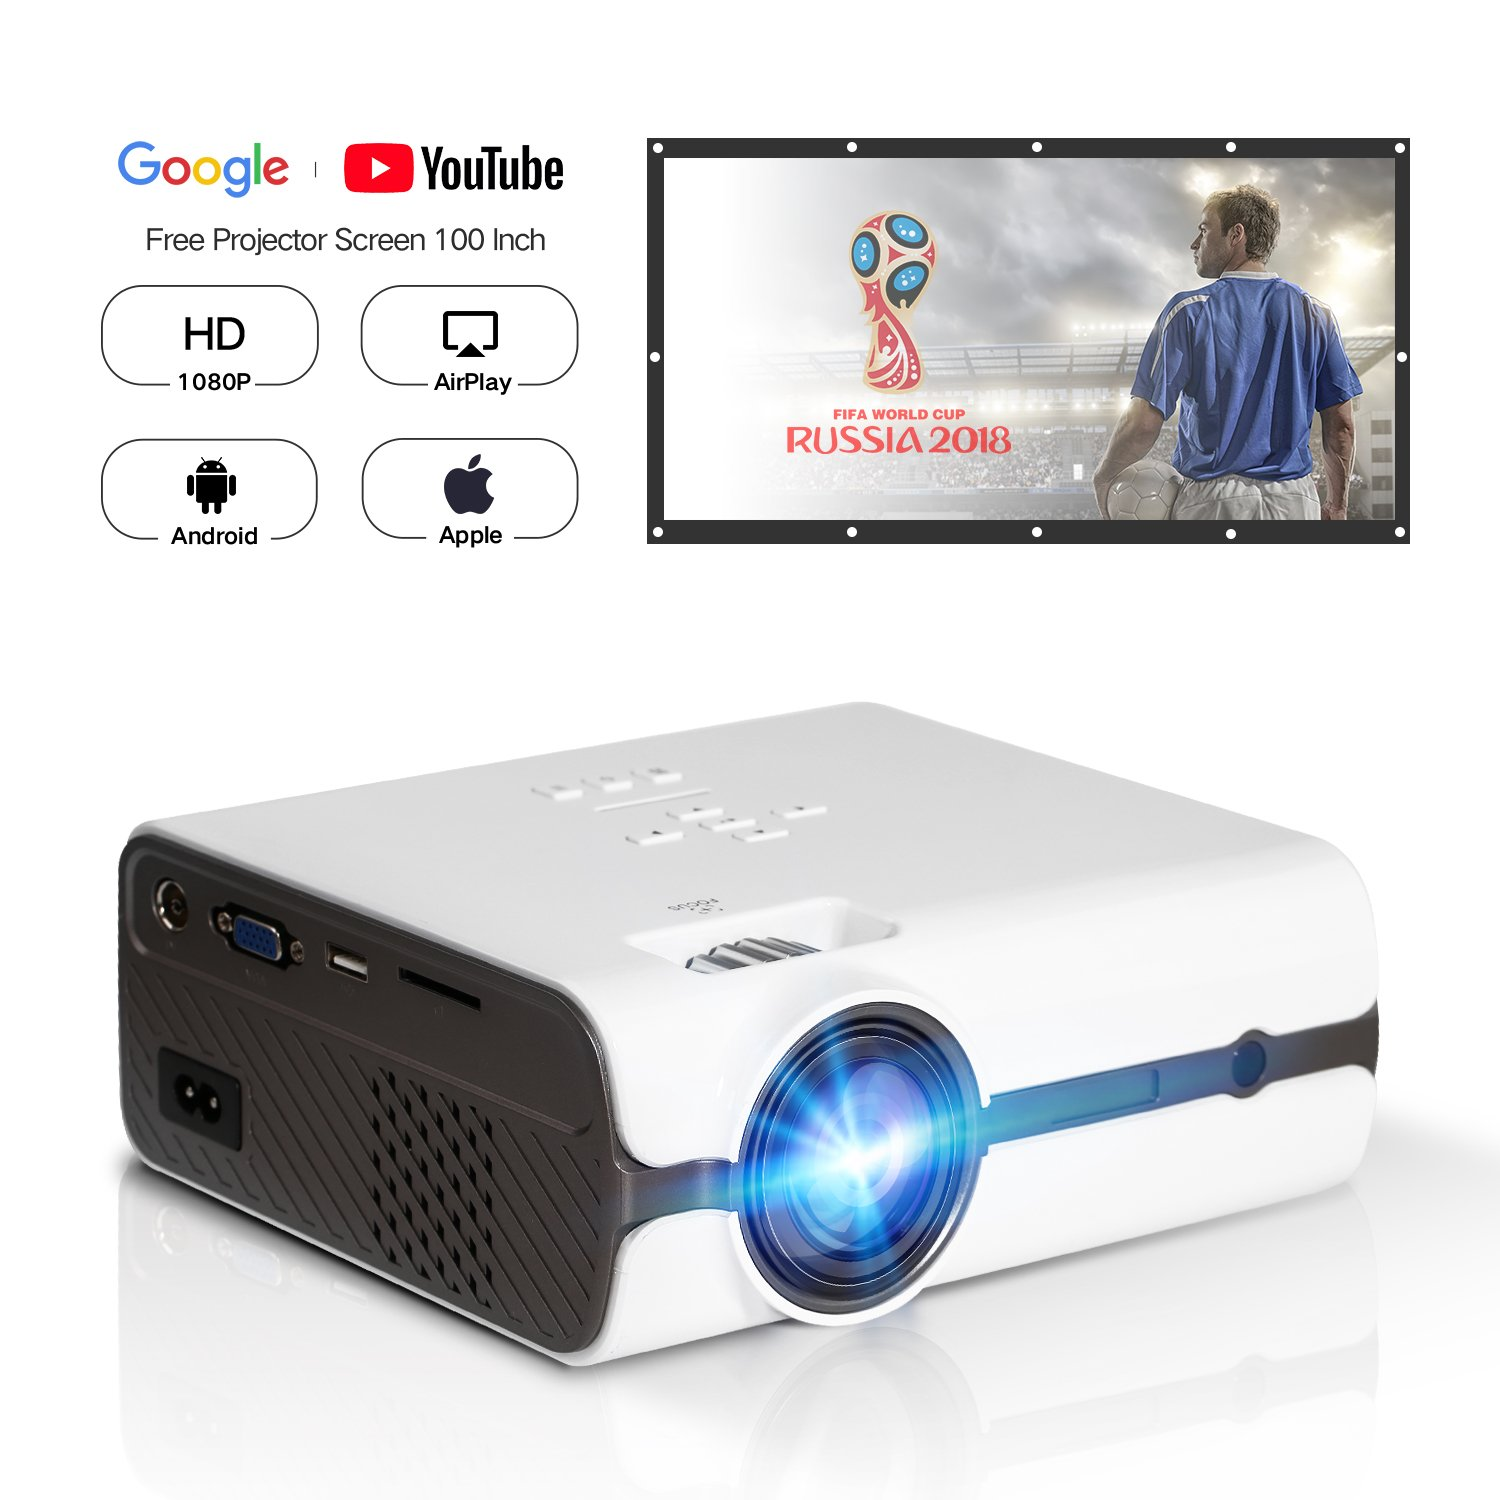 DOACE P3 HD 1080P Video Projector with Portable Screen 100'' for Indoor Outdoor Use, Home Theater Projector Support USB SD Card VGA AV for Home Cinema TV Laptop Game Smartphone with Free AV Cable